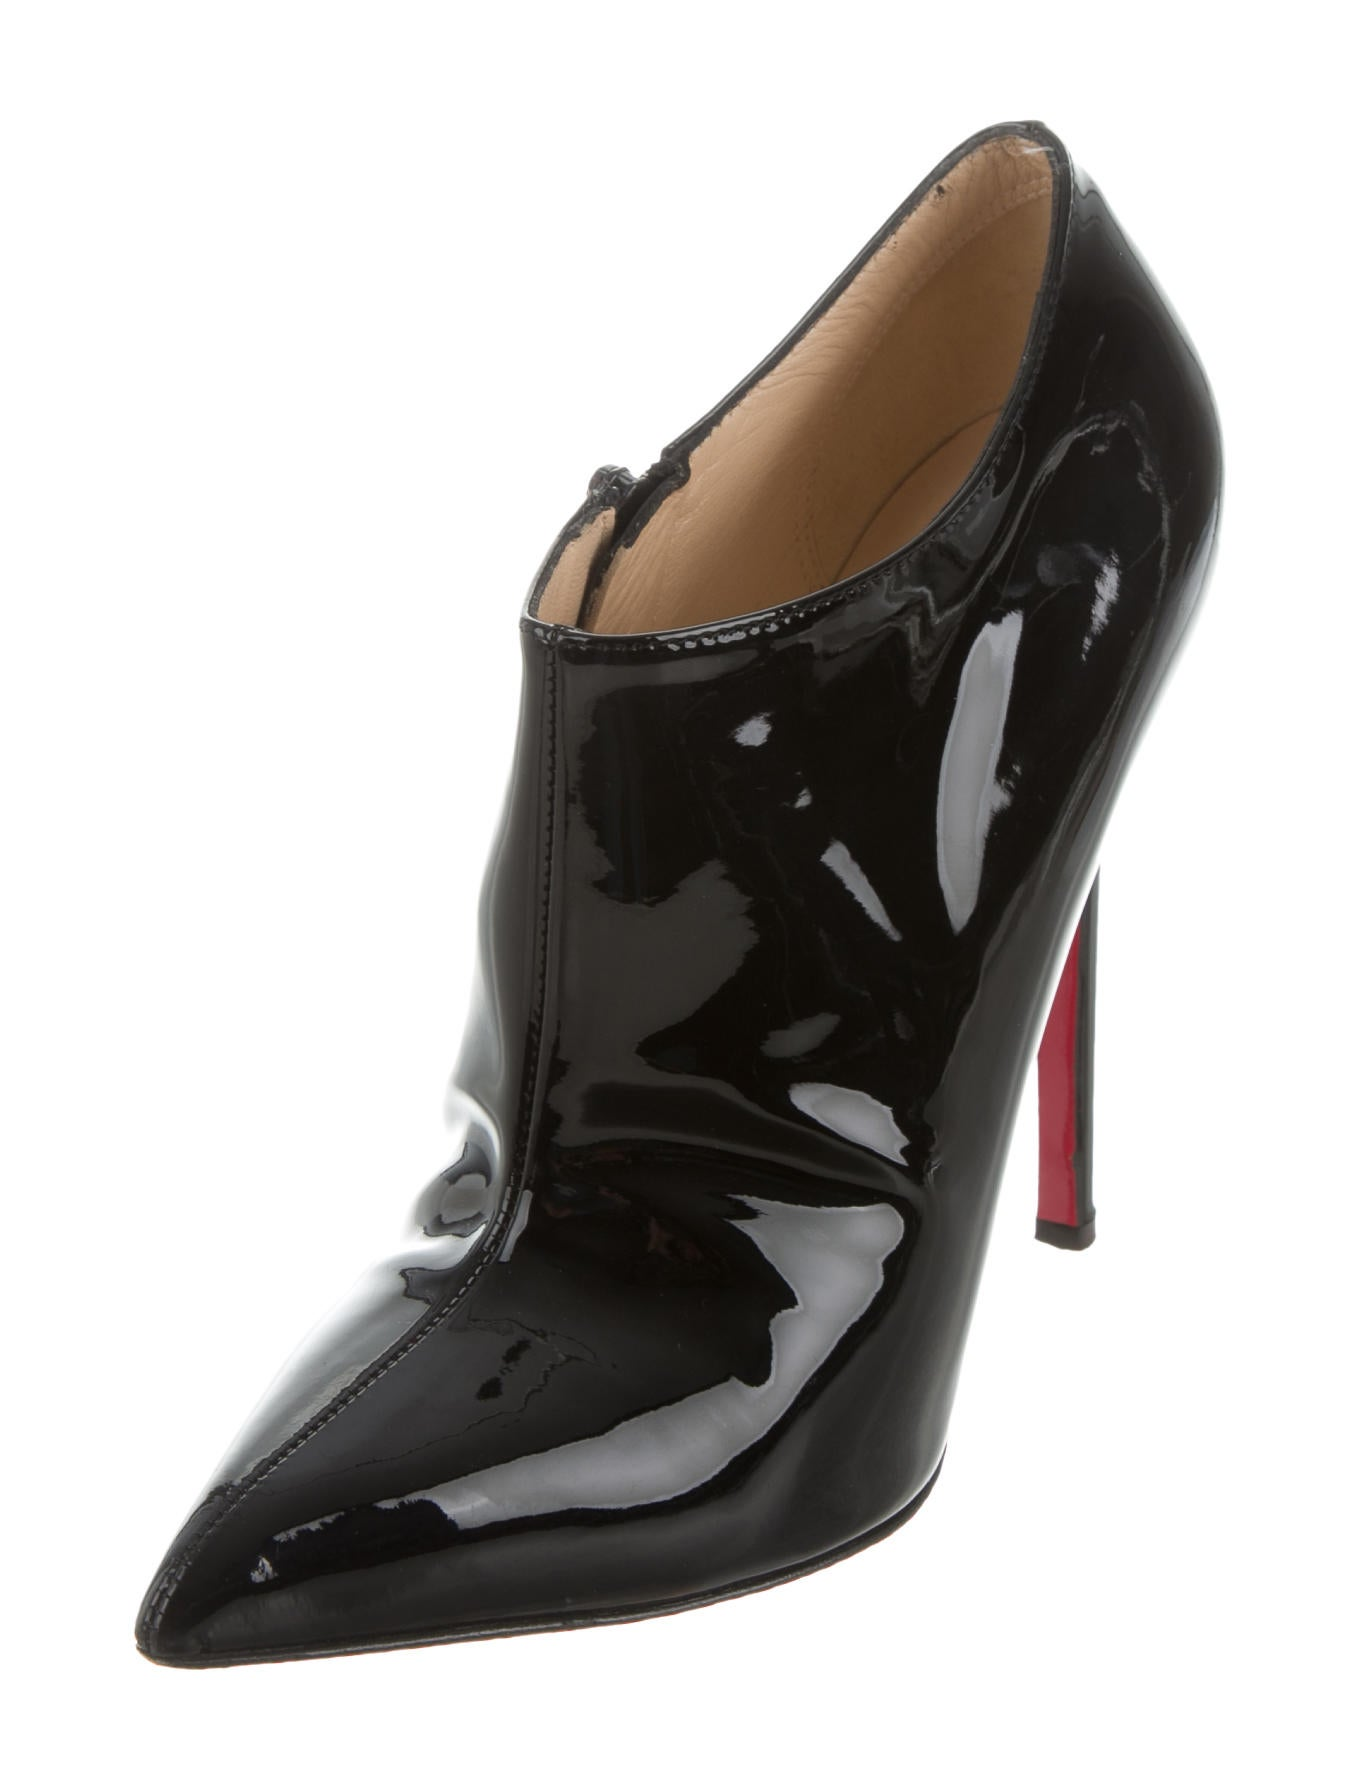 Small modern kitchen tables - Christian Louboutin Patent Leather Pointed Toe Booties